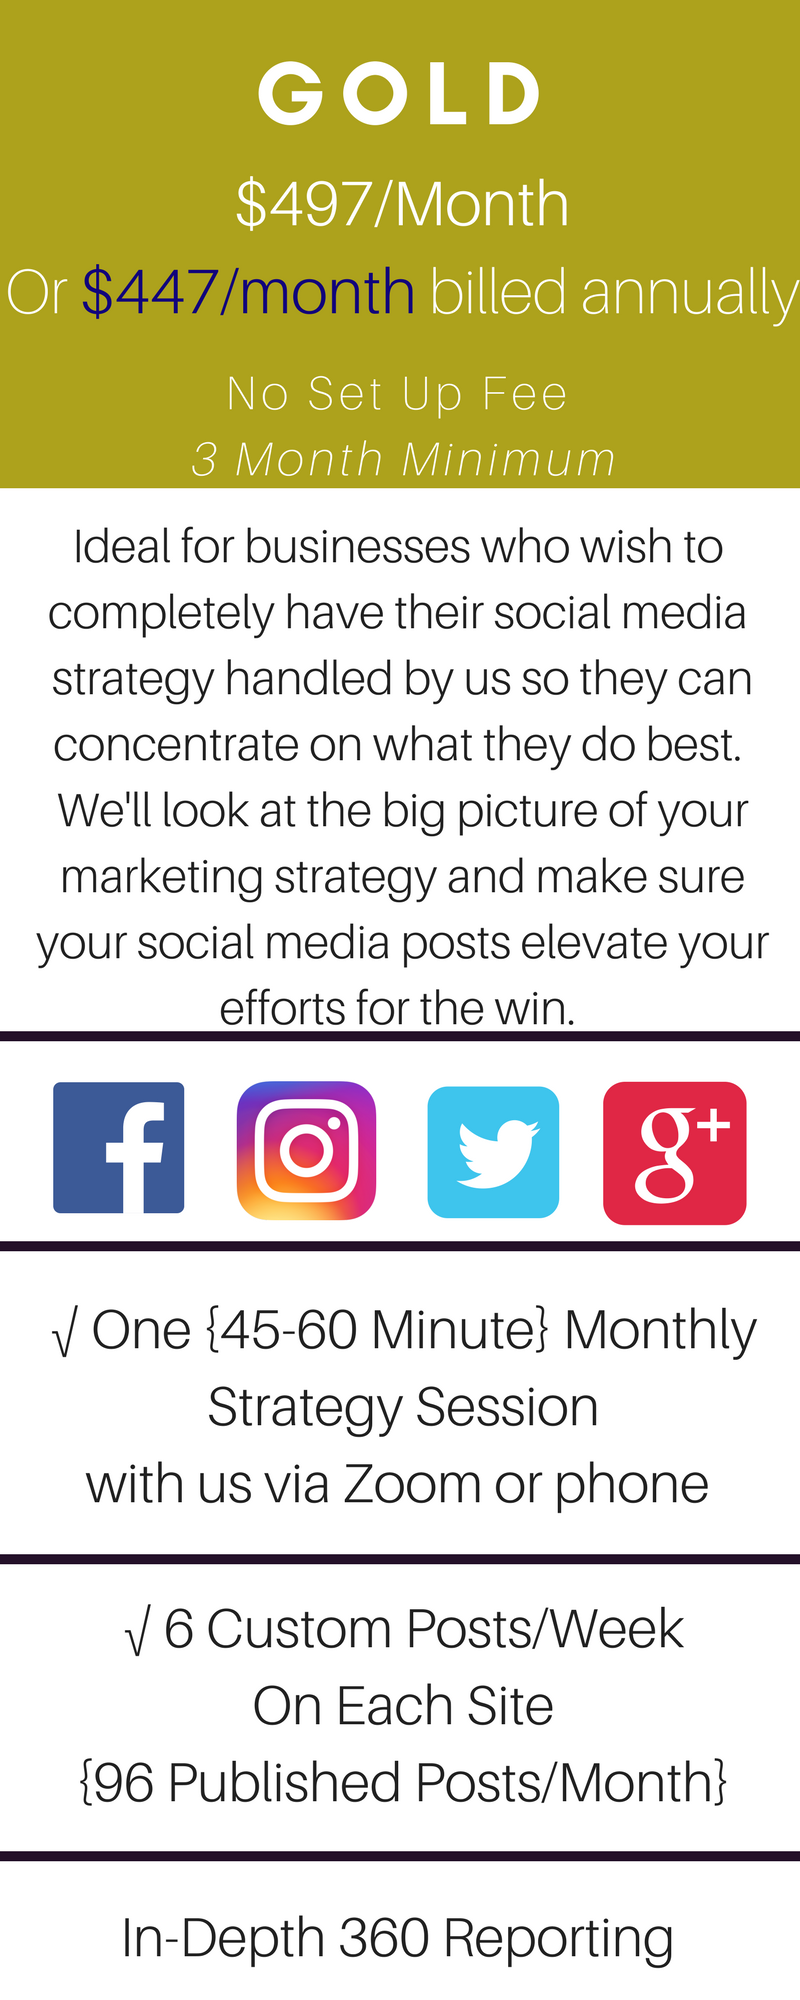 gold social media marketing package - perfectwavemarketing.com.png